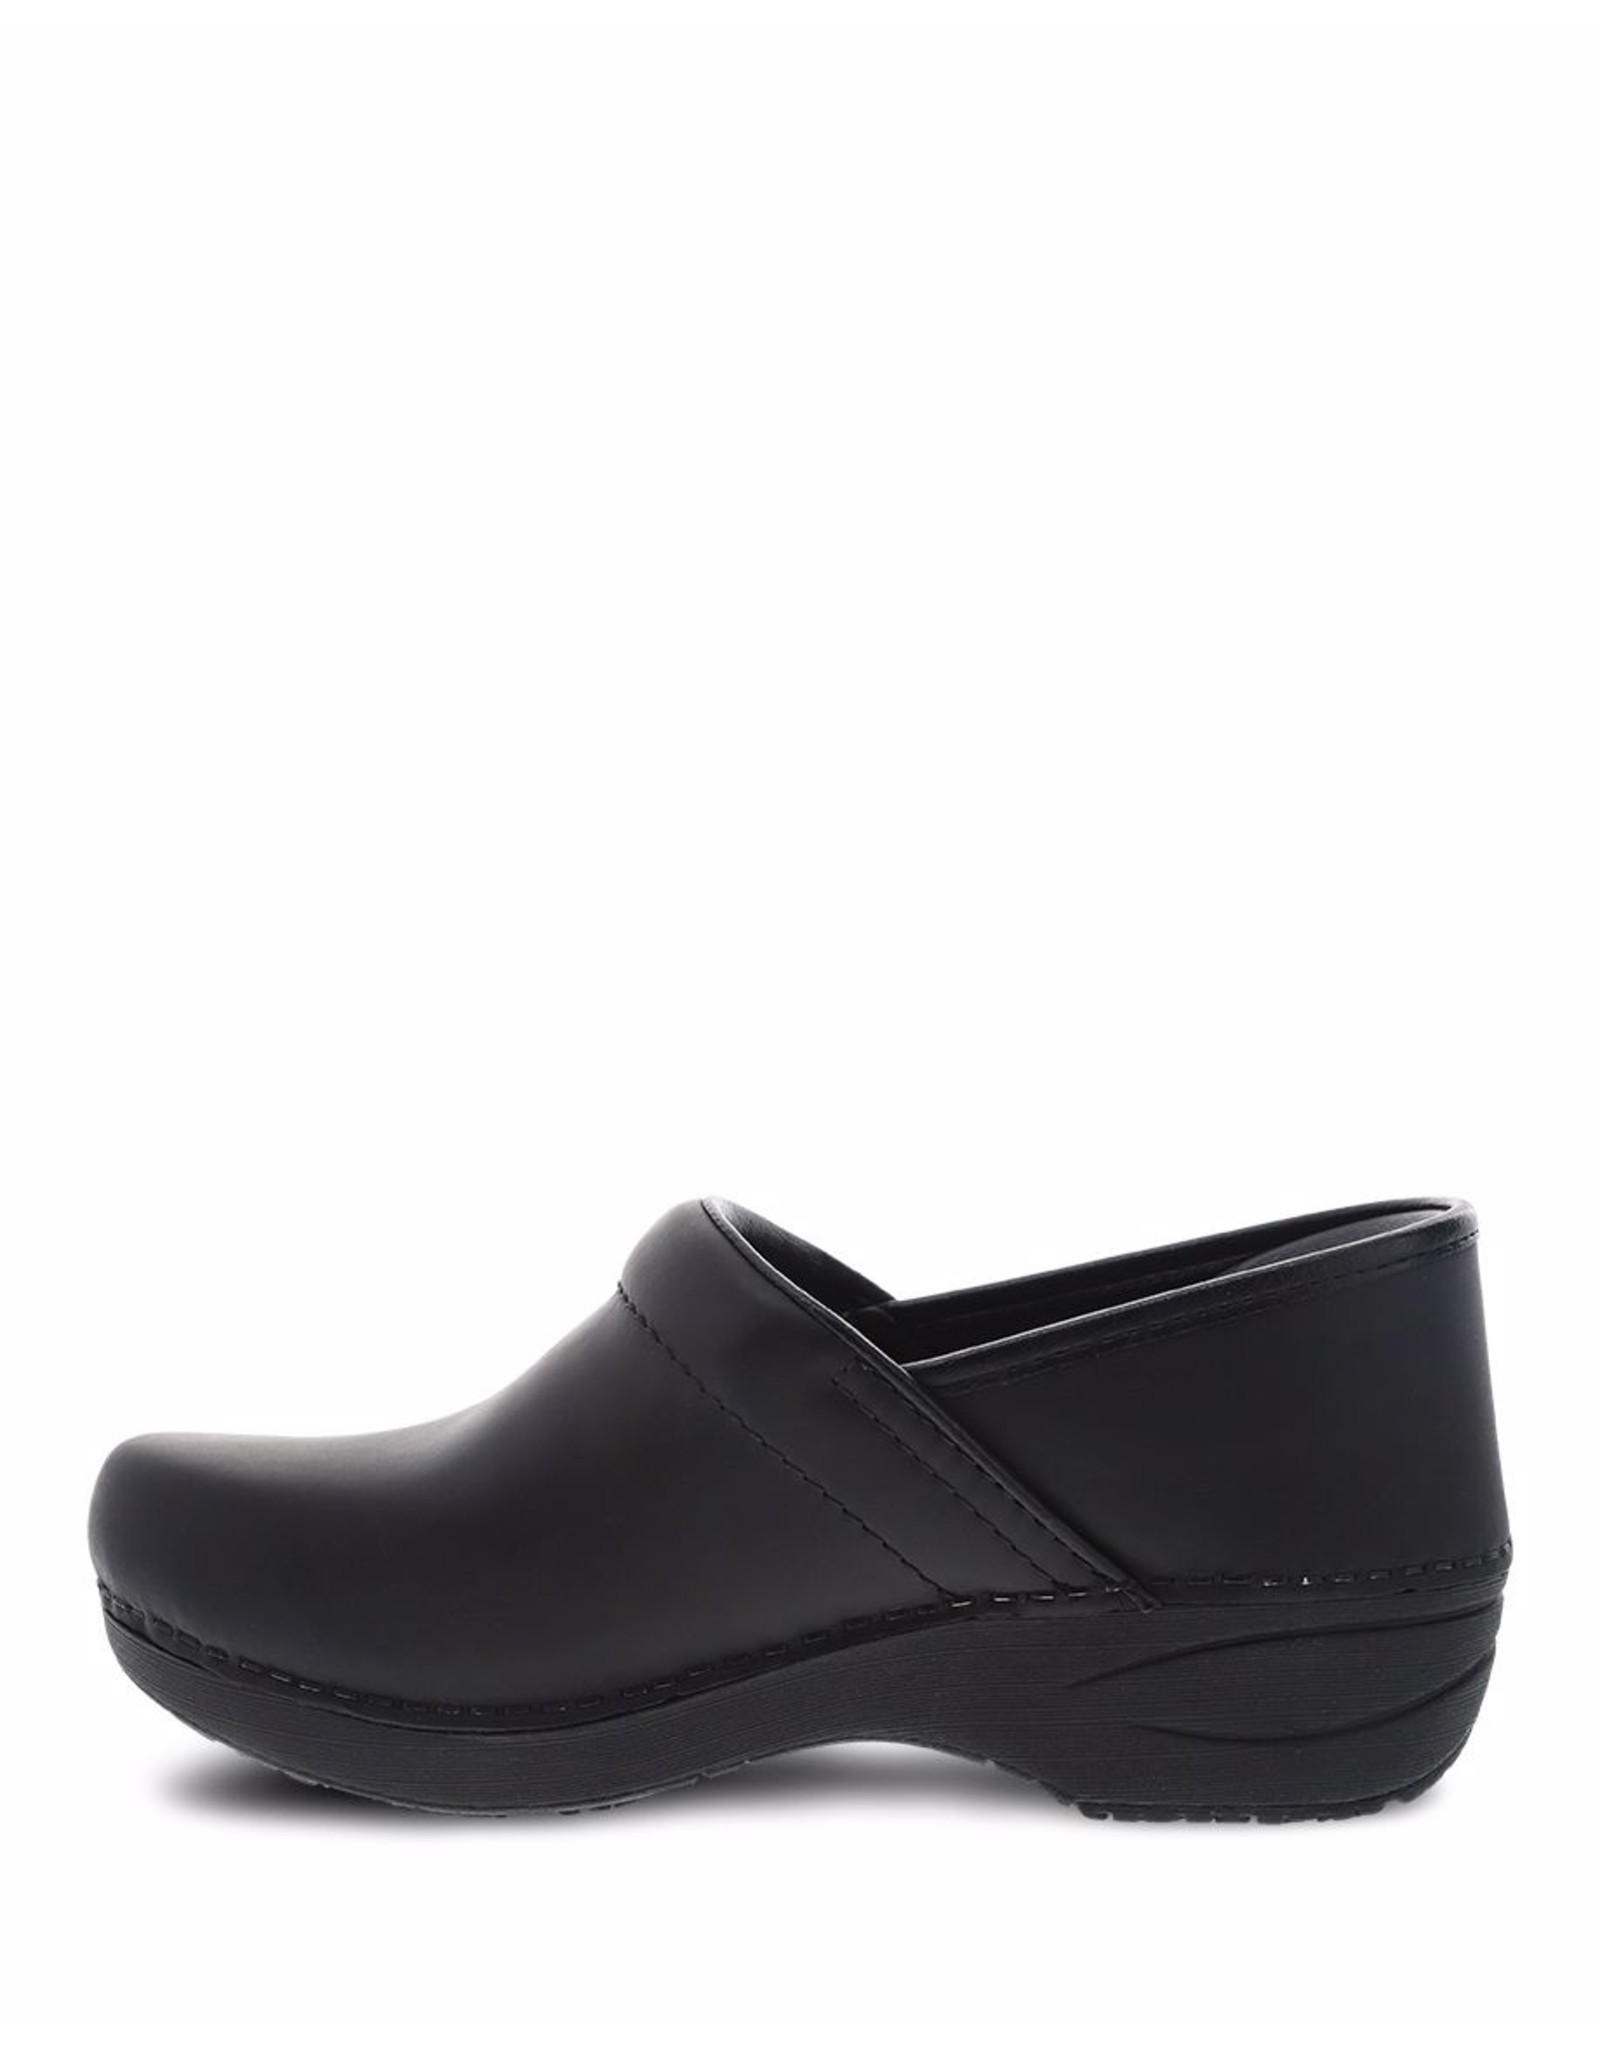 DANSKO DANSKO WOMEN'S XP 2.O WATERPROOF-BLACK